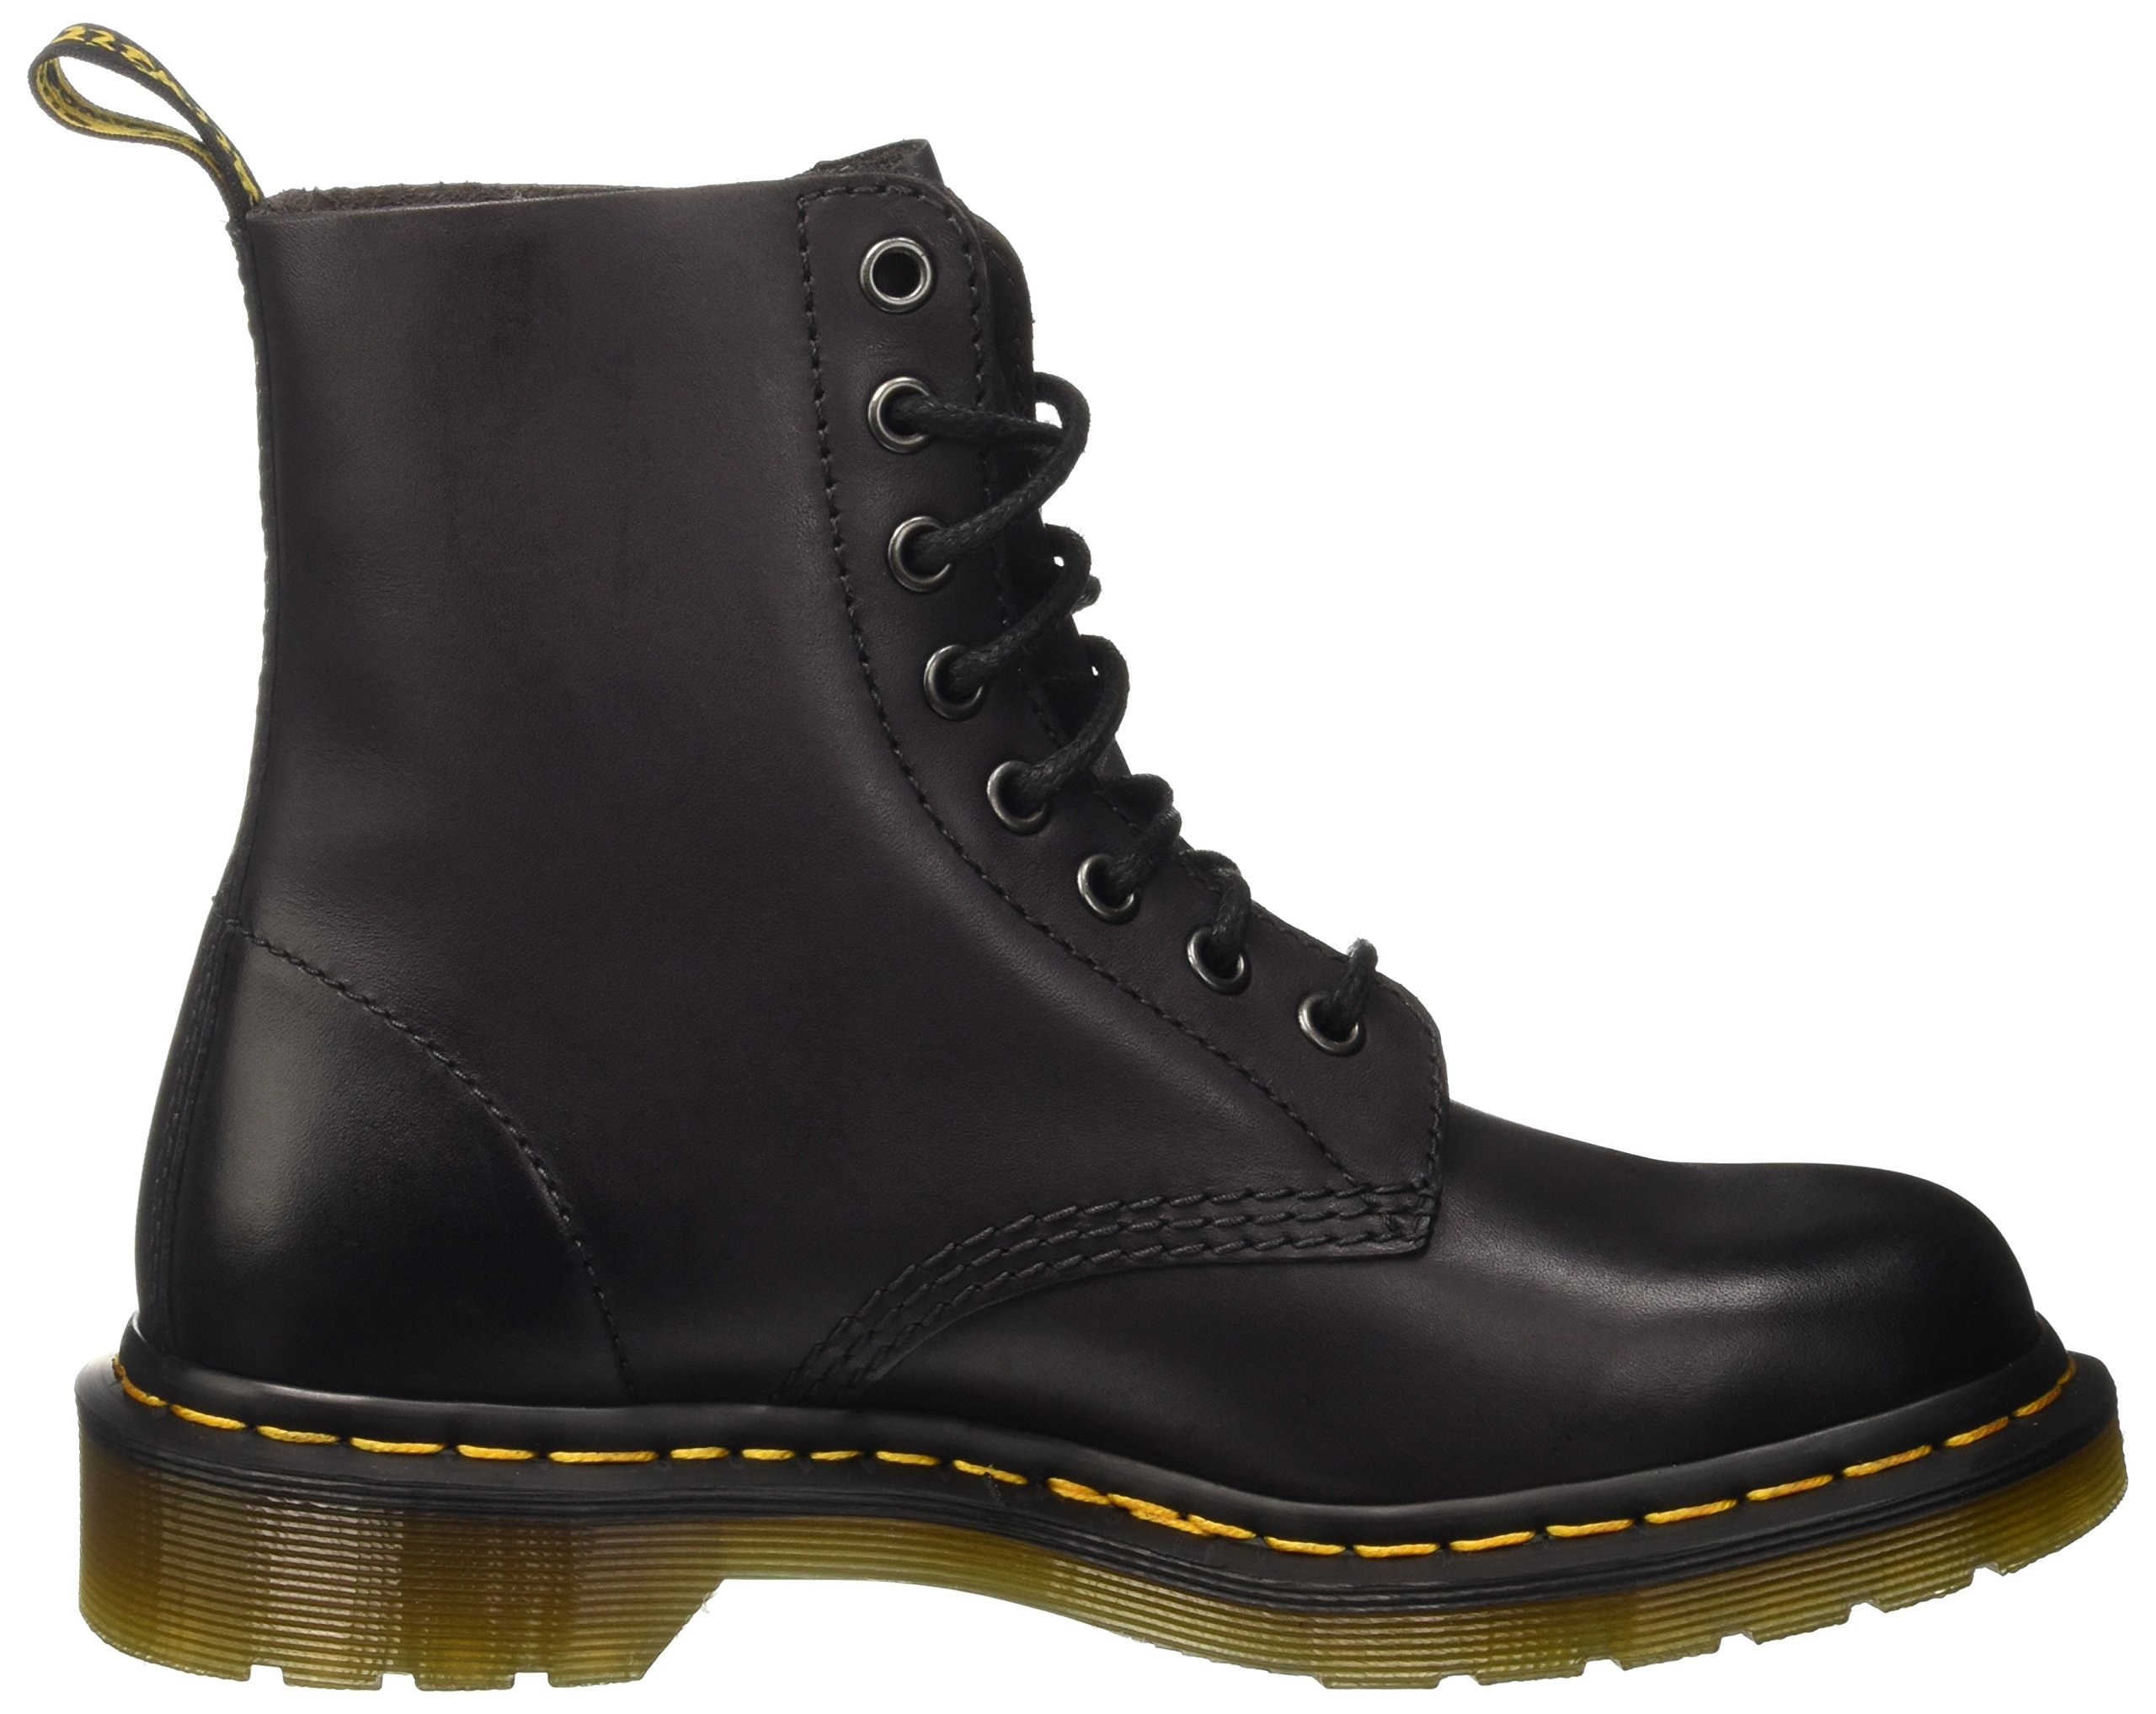 Dr. Martens Pascal 8 Eye Boot Boot, Charcoal Antique Temperley, 9 Medium UK (Men's 10 US) by Dr. Martens (Image #5)